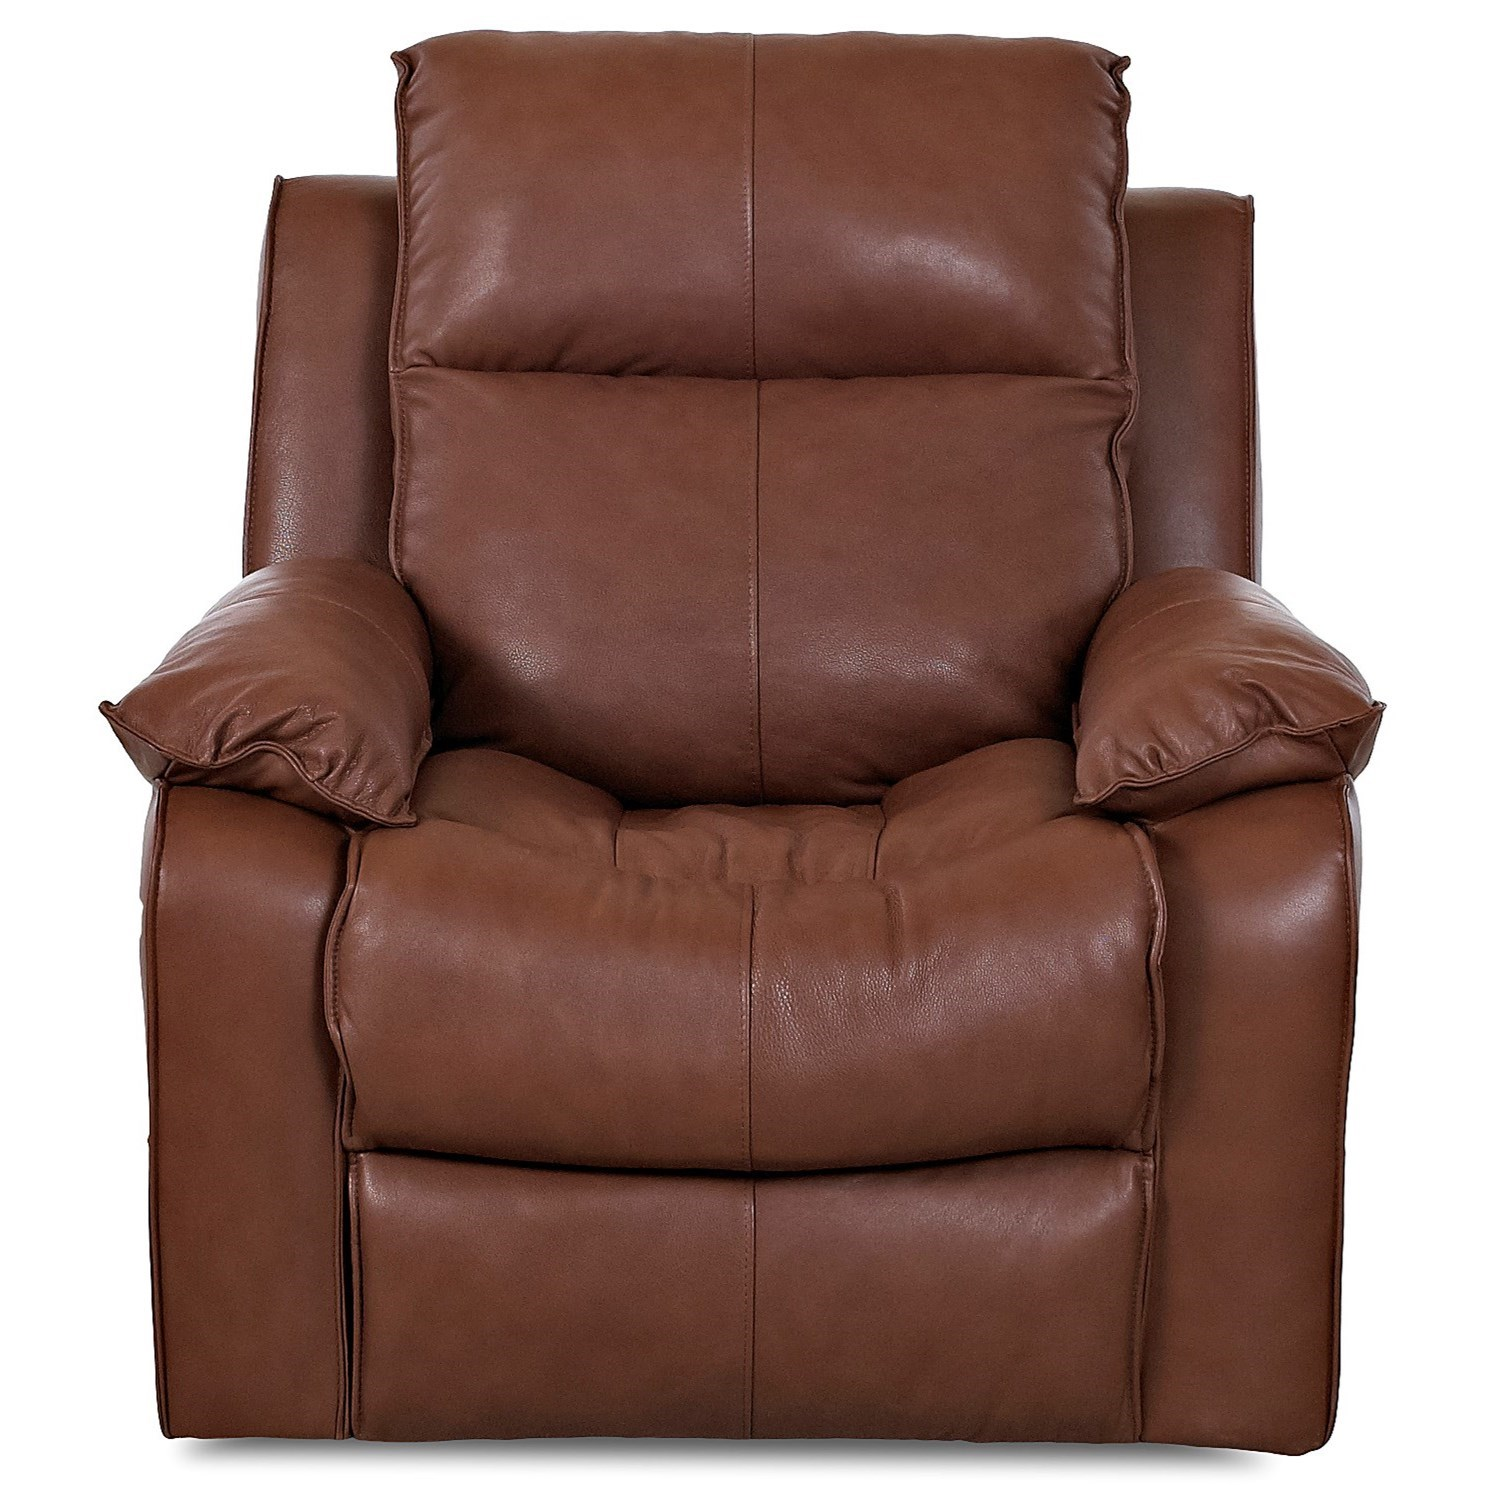 Leather Rocking Chair Castaway Casual Reclining Rocking Chair With Bucket Seat And Pillow Arms By Klaussner At Value City Furniture